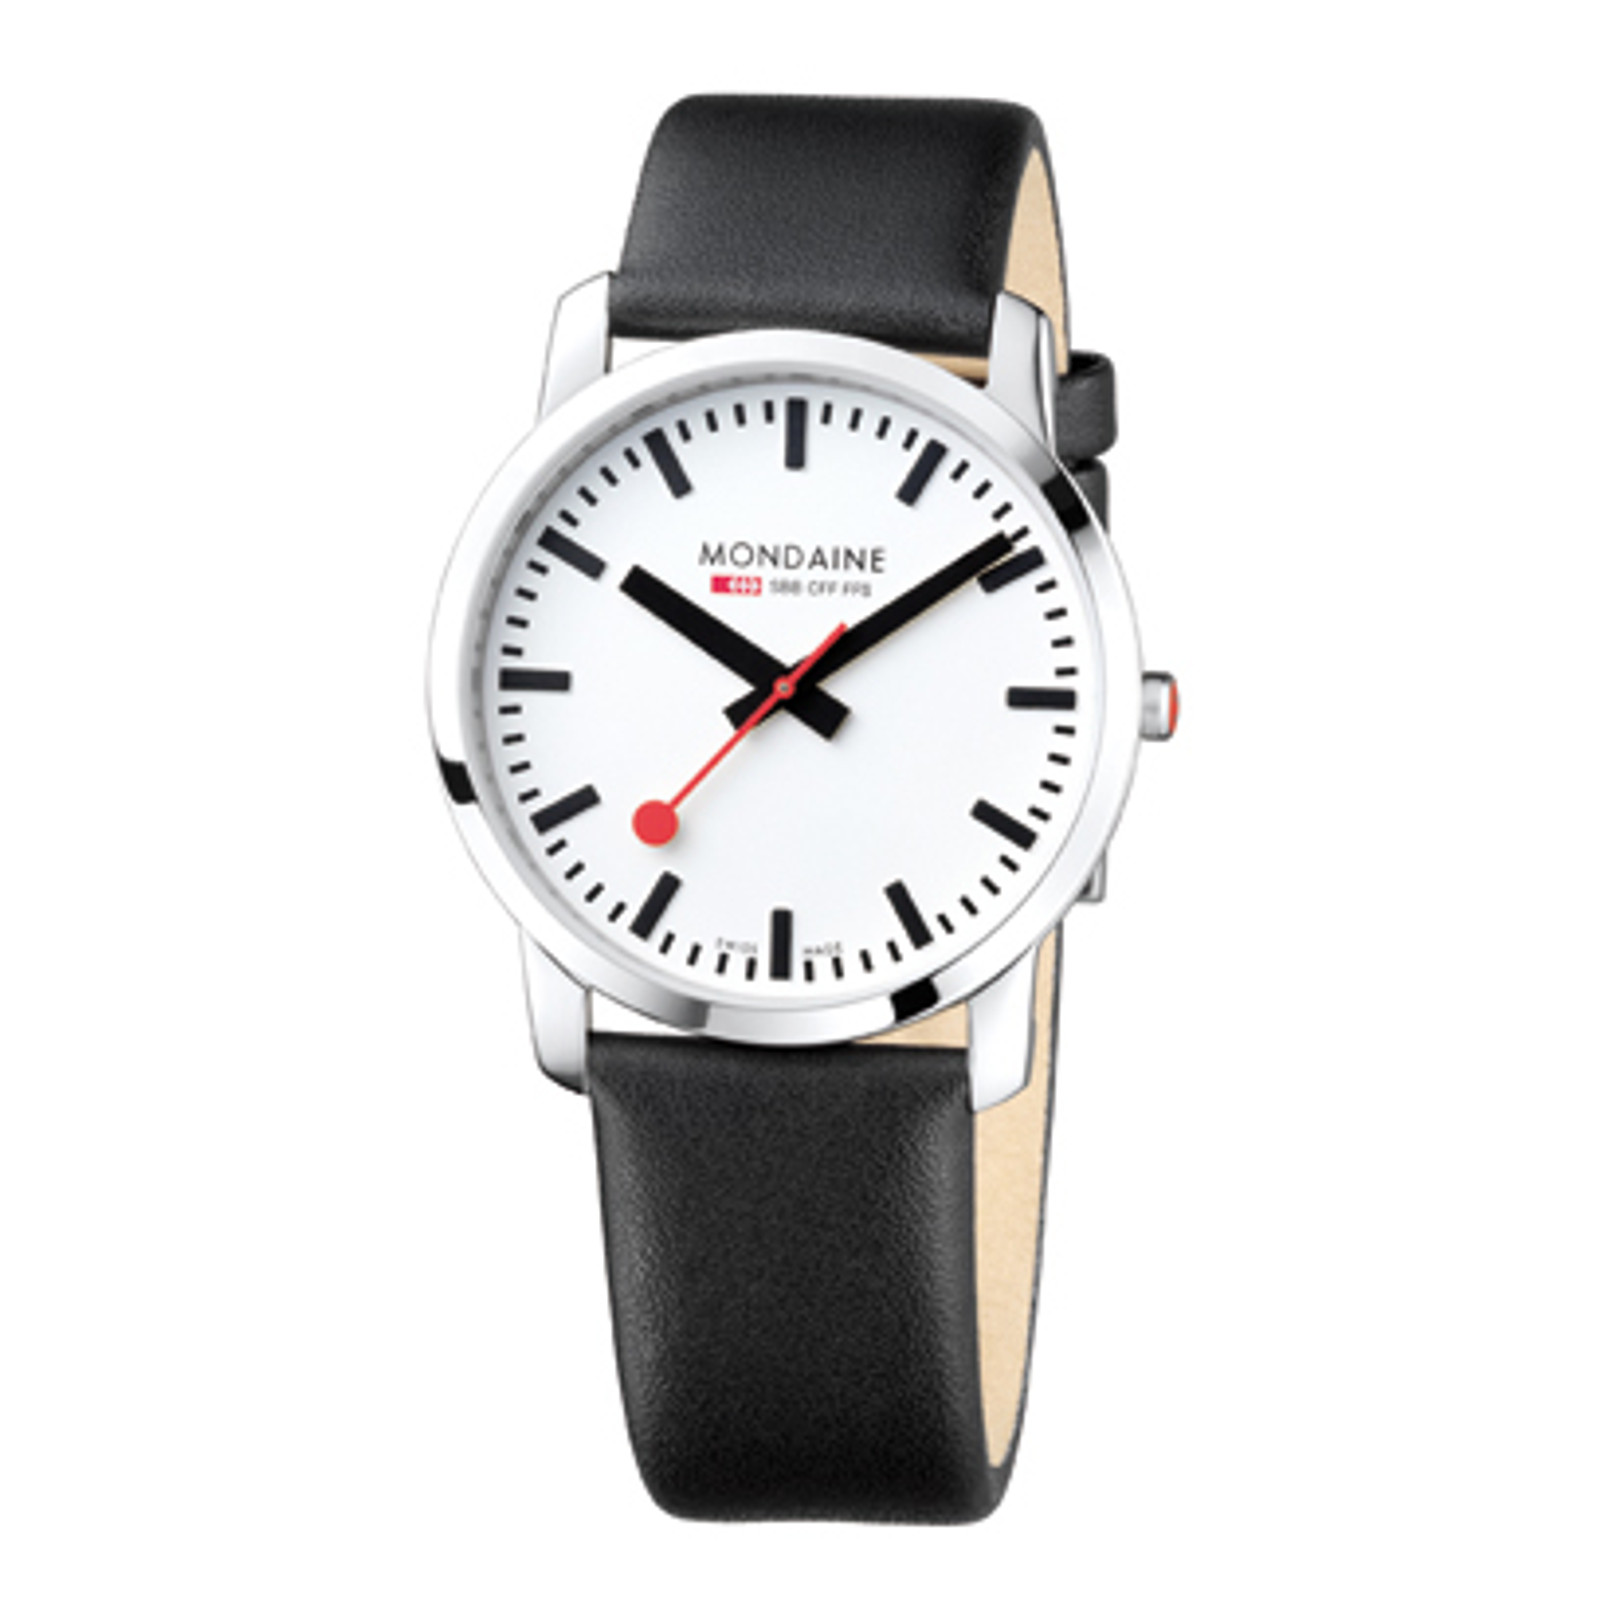 Simply Elegant 41mm - Black Leather Strap White Face Sapphire Glass